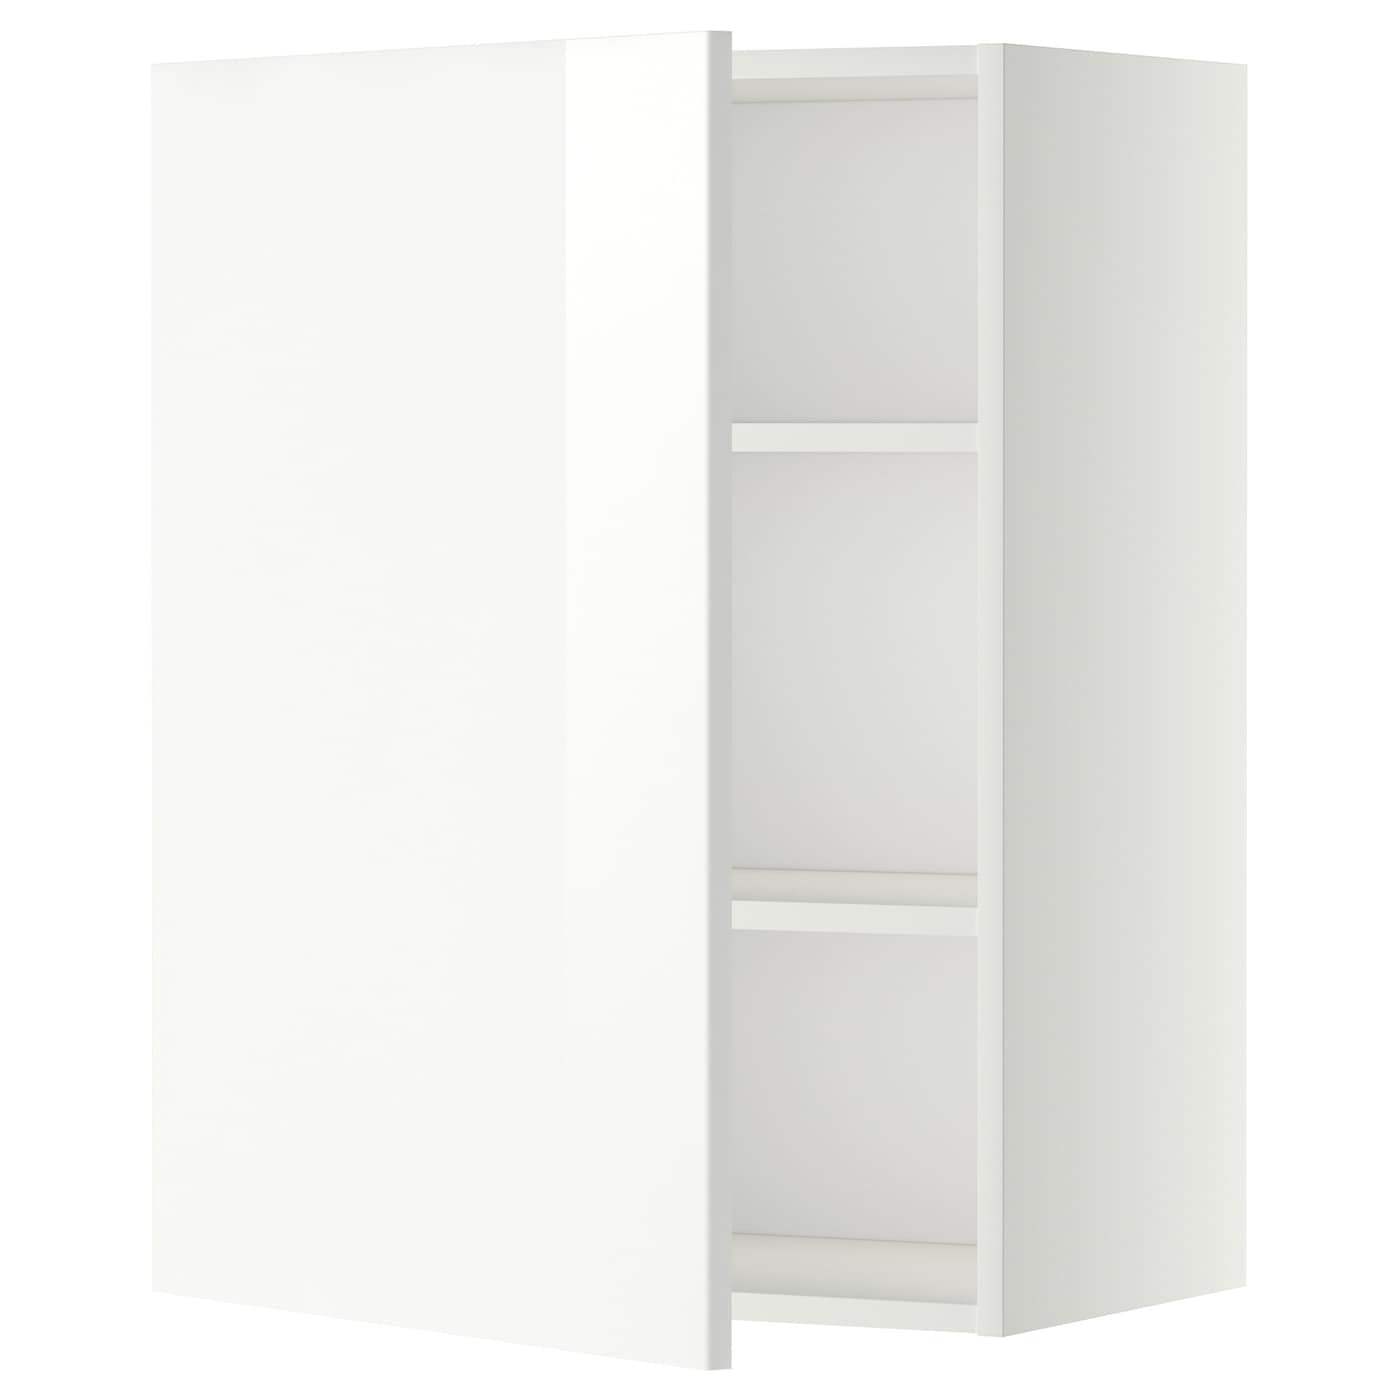 METOD Wall cabinet with shelves White ringhult white 60x80 cm IKEA